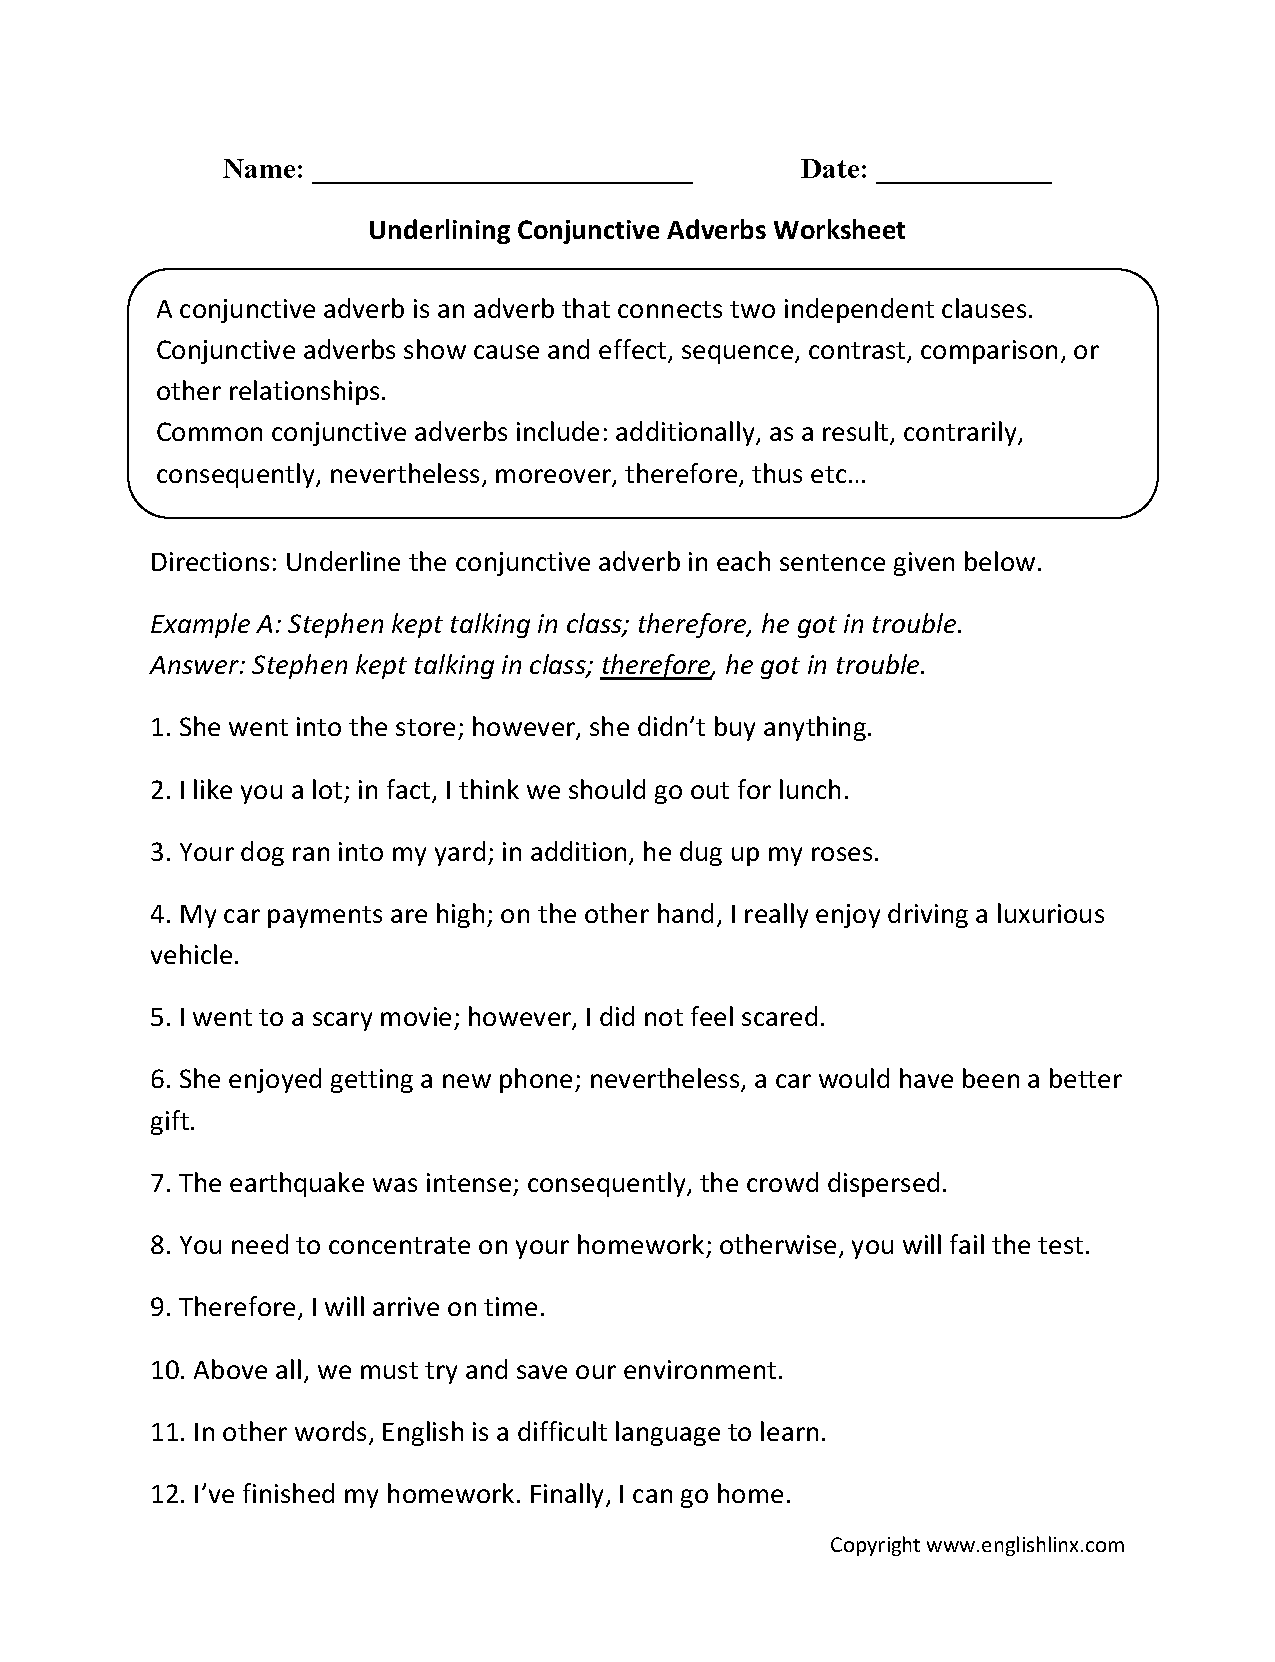 Weirdmailus  Picturesque Englishlinxcom  Conjunctions Worksheets With Likable Worksheet With Easy On The Eye Daily Living Skills Worksheets Free Also Free Printable Worksheets For  Year Olds In Addition Color By Addition Worksheet And Social Studies Vocabulary Worksheets As Well As Handwriting Worksheets For Kindergarten Free Additionally Associative Distributive Commutative Properties Worksheet From Englishlinxcom With Weirdmailus  Likable Englishlinxcom  Conjunctions Worksheets With Easy On The Eye Worksheet And Picturesque Daily Living Skills Worksheets Free Also Free Printable Worksheets For  Year Olds In Addition Color By Addition Worksheet From Englishlinxcom